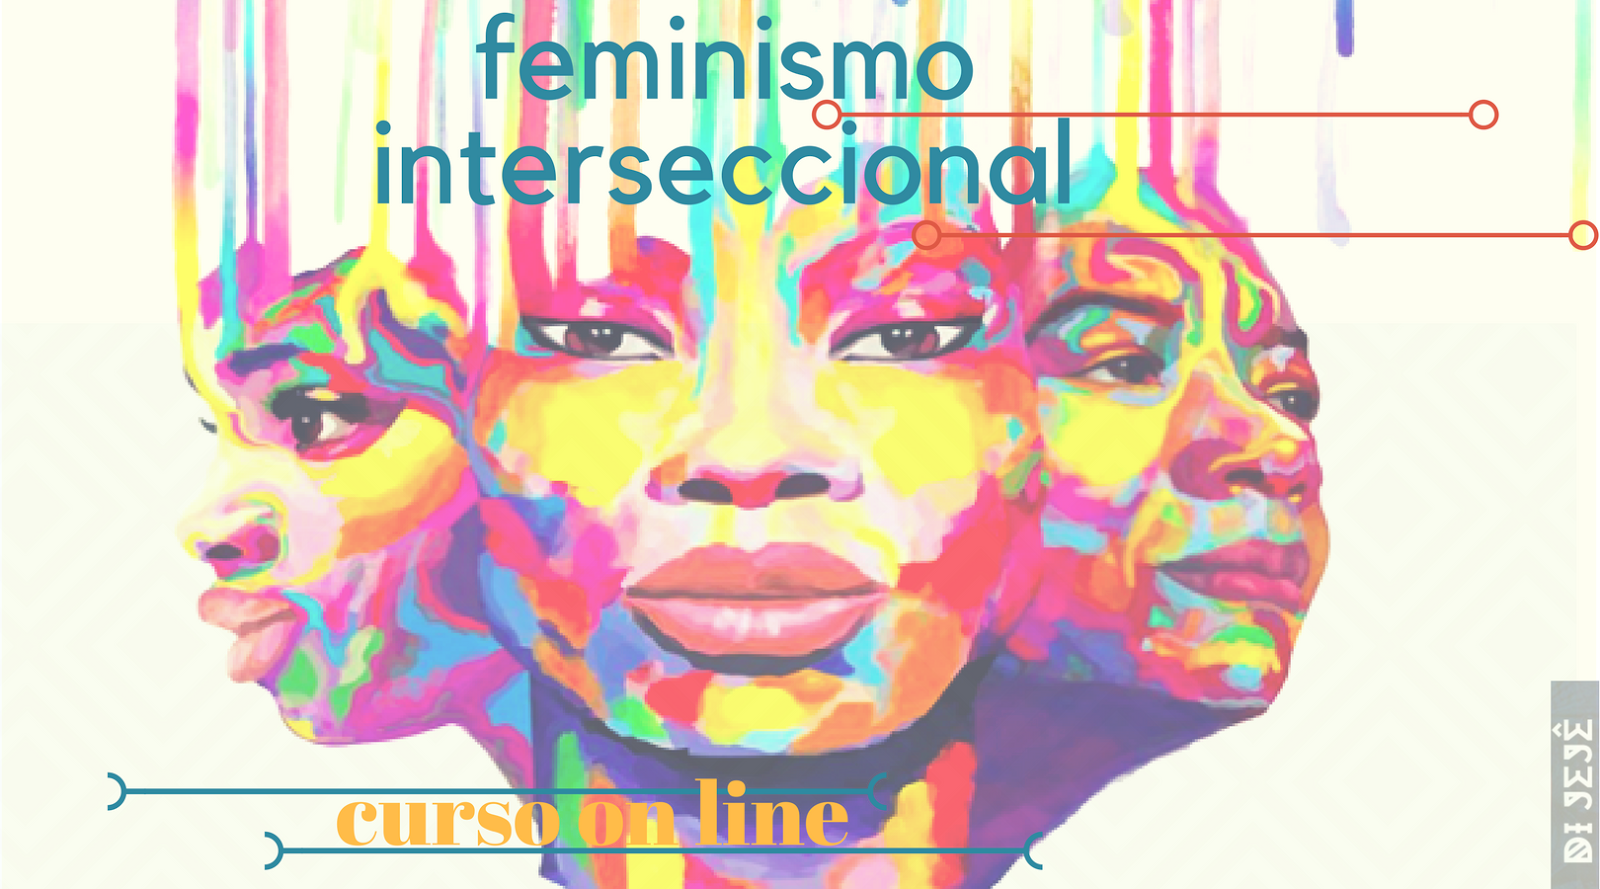 Curso On Line sobre Feminismo Interseccional